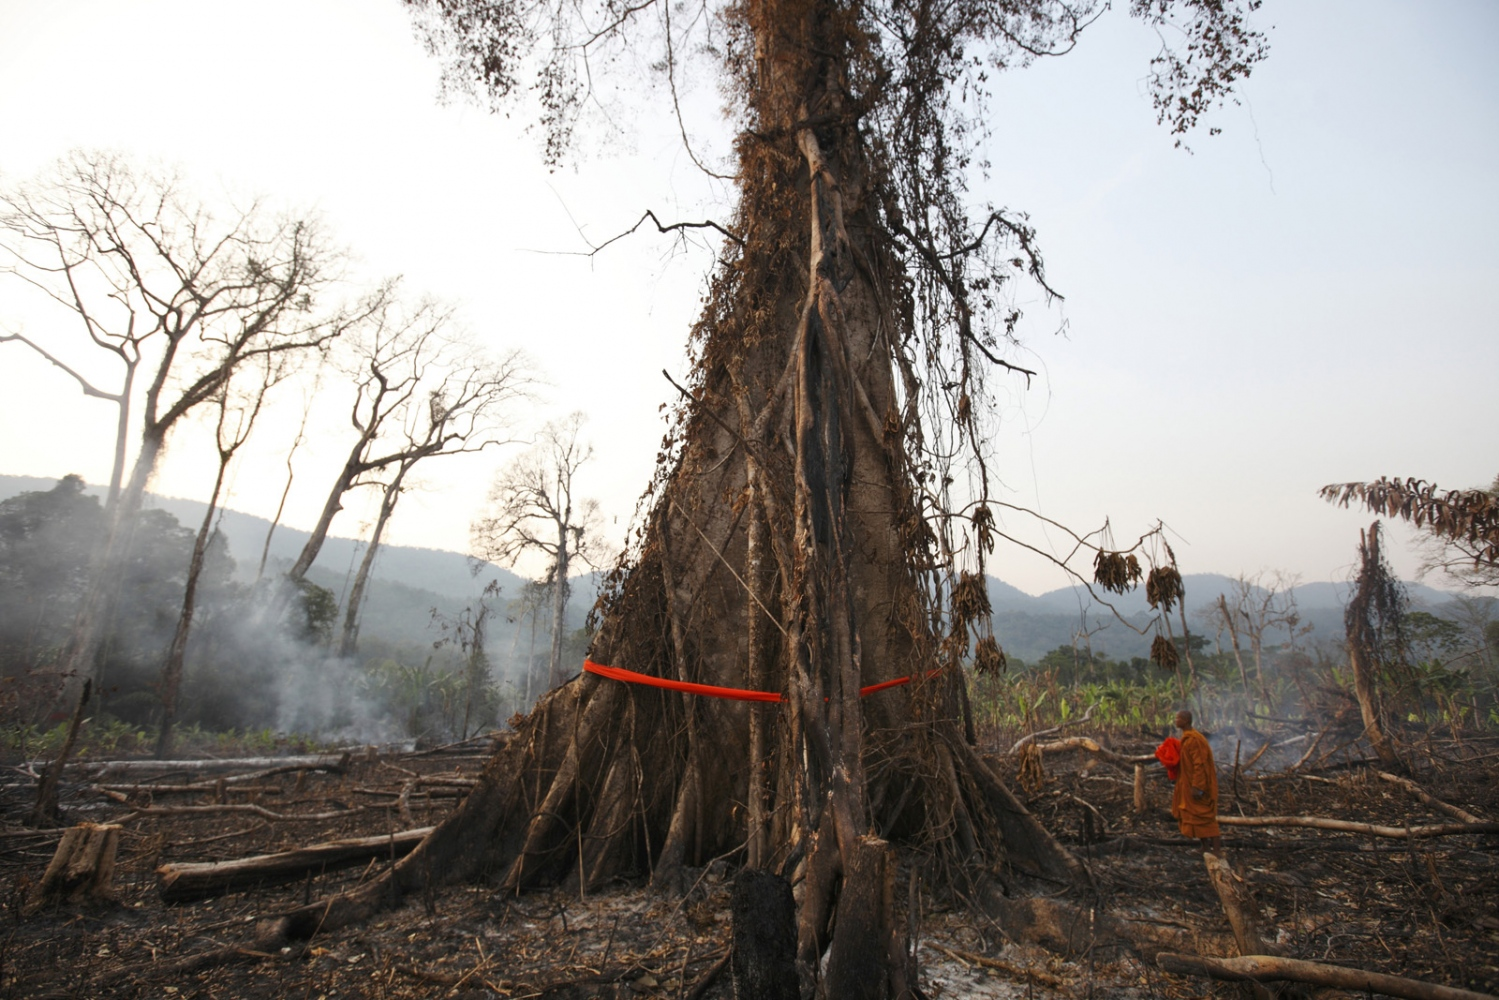 A Cambodian Buddhist monk blesses a large tree by wrapping orange cloth around it and praying. Following uncontrolled forest destruction in the Central Cardamom Protected Forest (CCPF) an eco-warrior monk movement has begun whereby monks and villagers try to protect areas of forest by blessing trees to deter would-be loggers. This was the first tree ordination in a forest area on the edge of Ta Tay Leu village that has just been cleared to make-way for a banana plantation. Whilst they were too late to save the smaller trees they were able to bless and tie orange material around the remaining large trees.